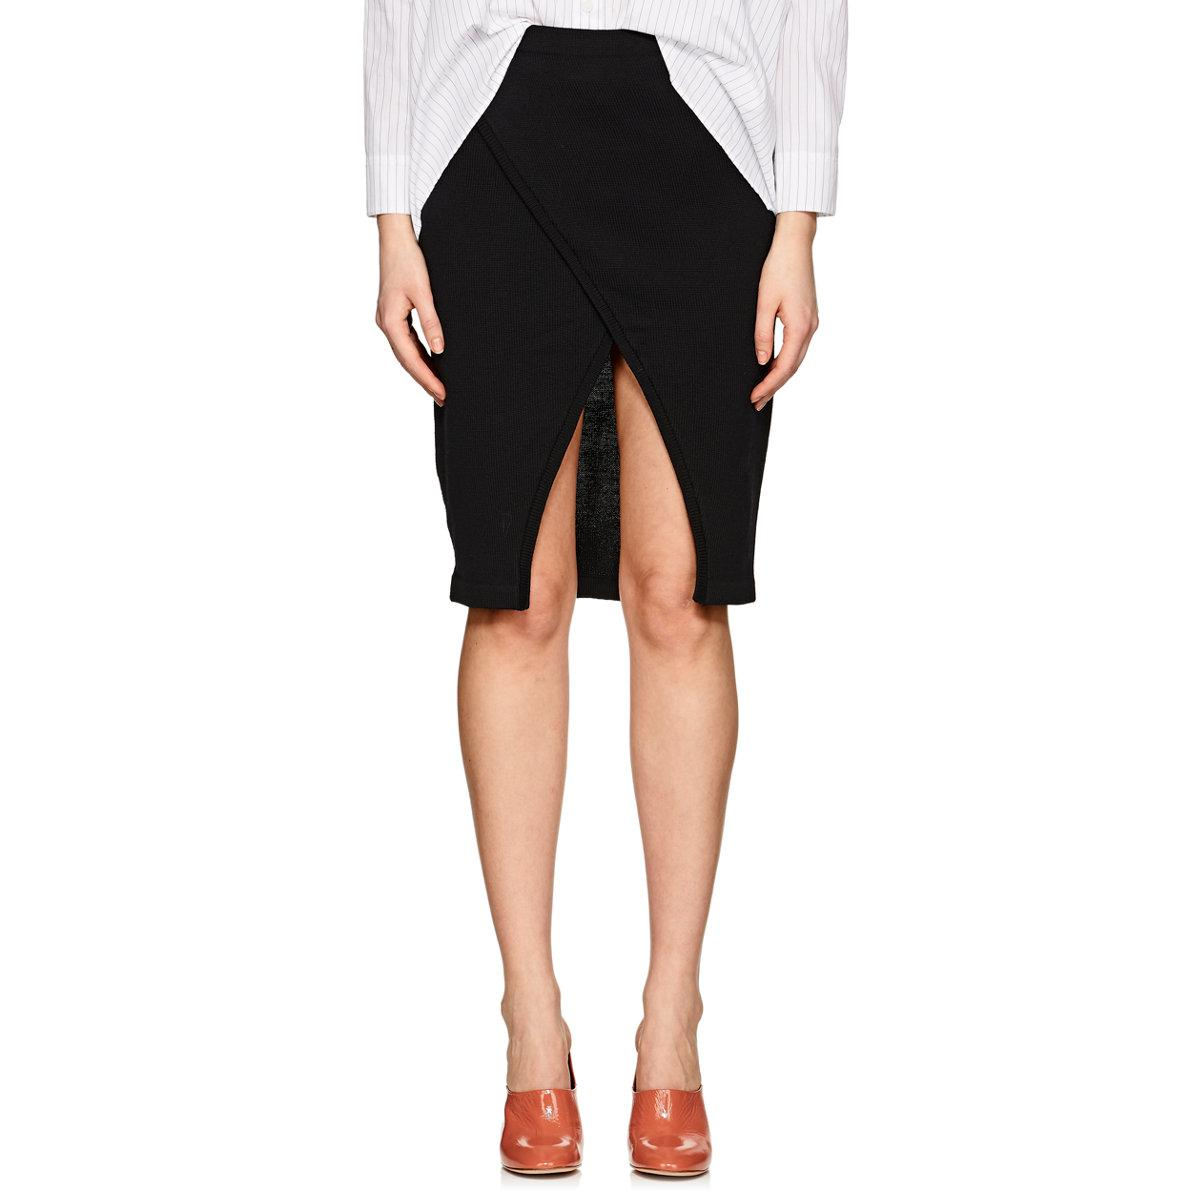 Clearance 2018 New Sale Footlocker Finishline Womens Wrap-Front Merino Wool-Cashmere Skirt Ji Oh Clearance Manchester Free Shipping Very Cheap Best Deals fqtNCeqX4n